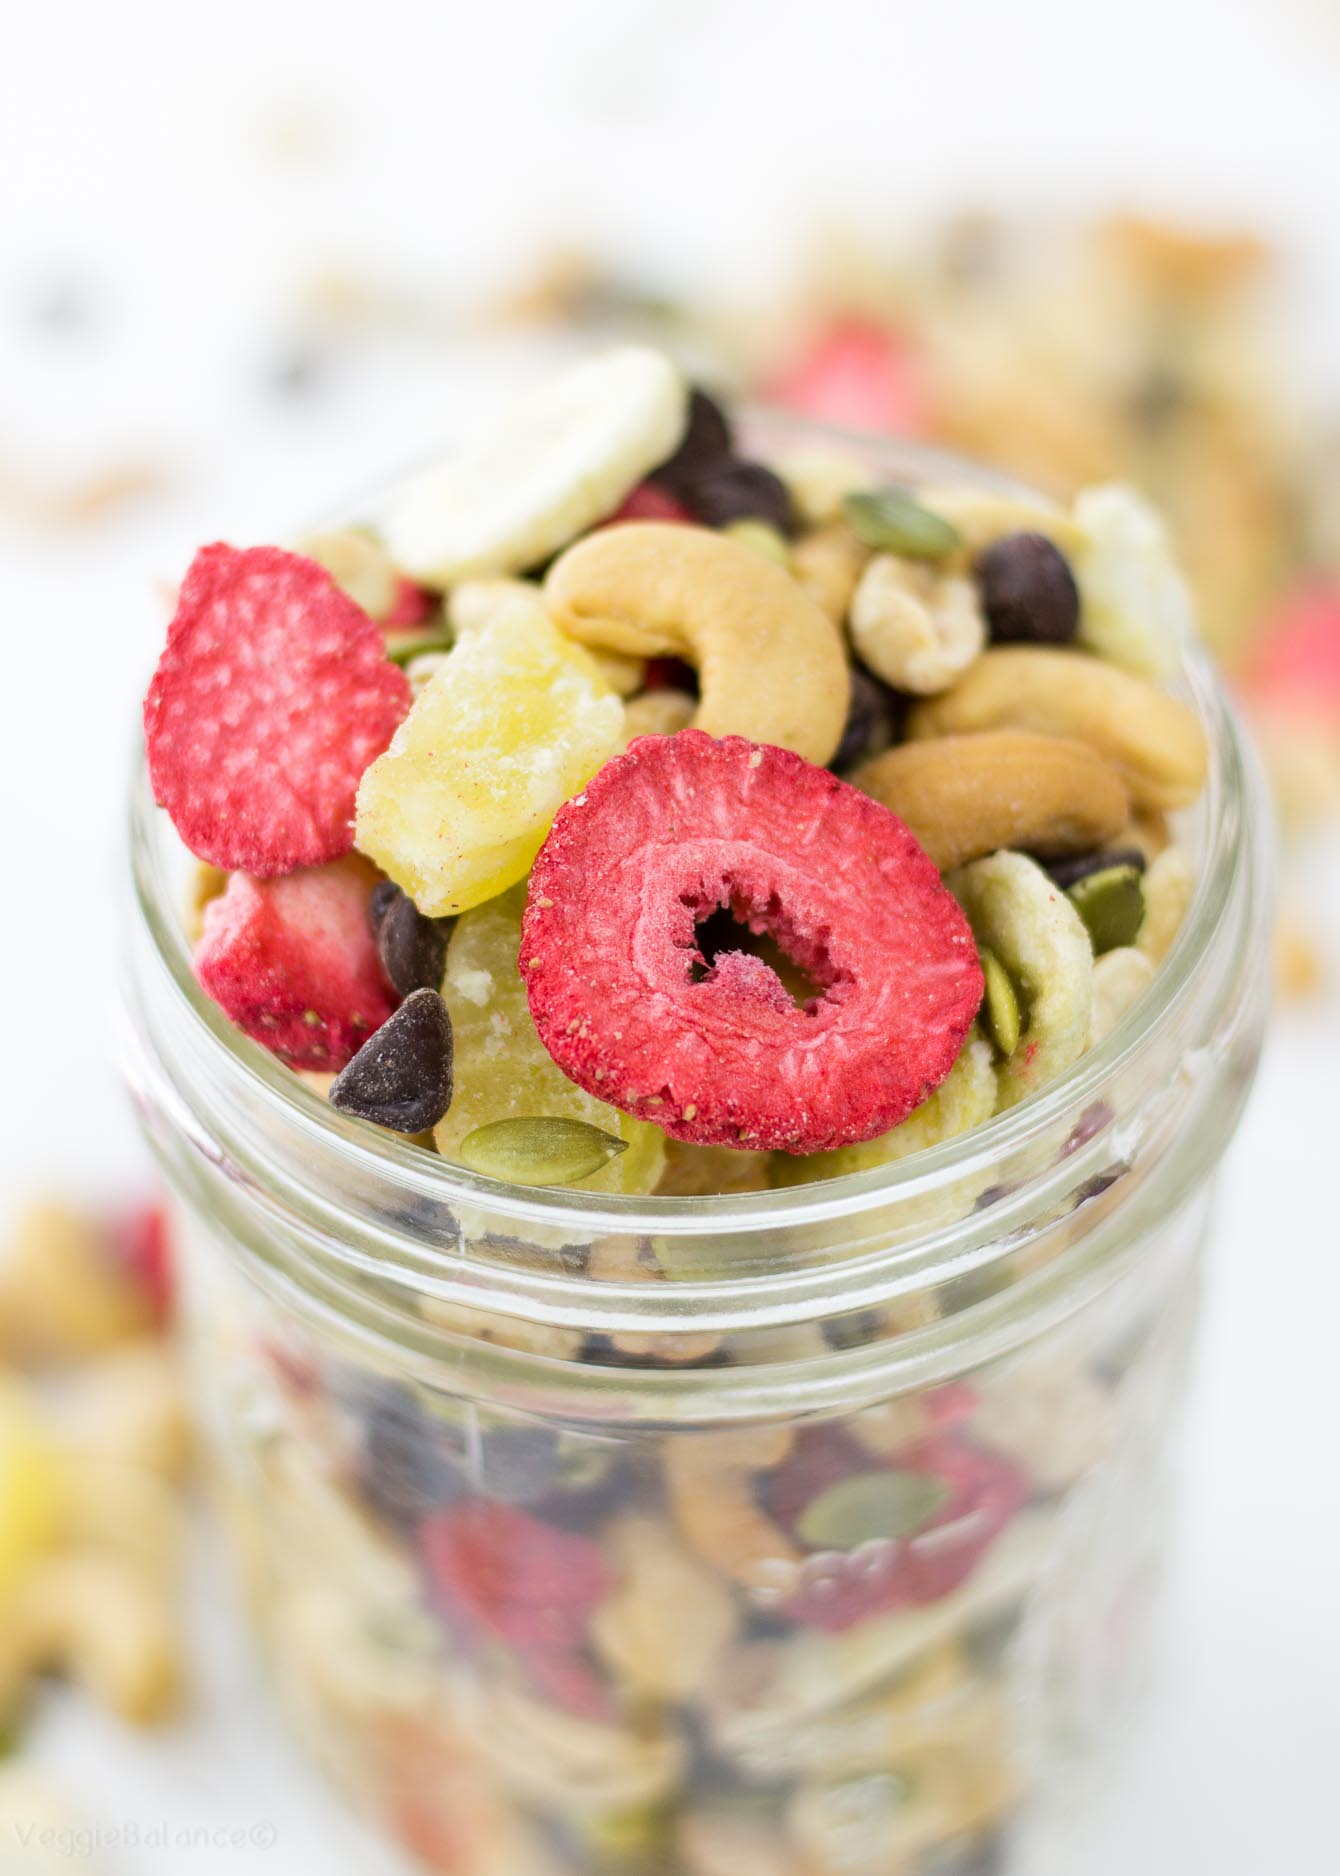 Banana Split Trail Mix recipe gluten free - Veggiebalance.com